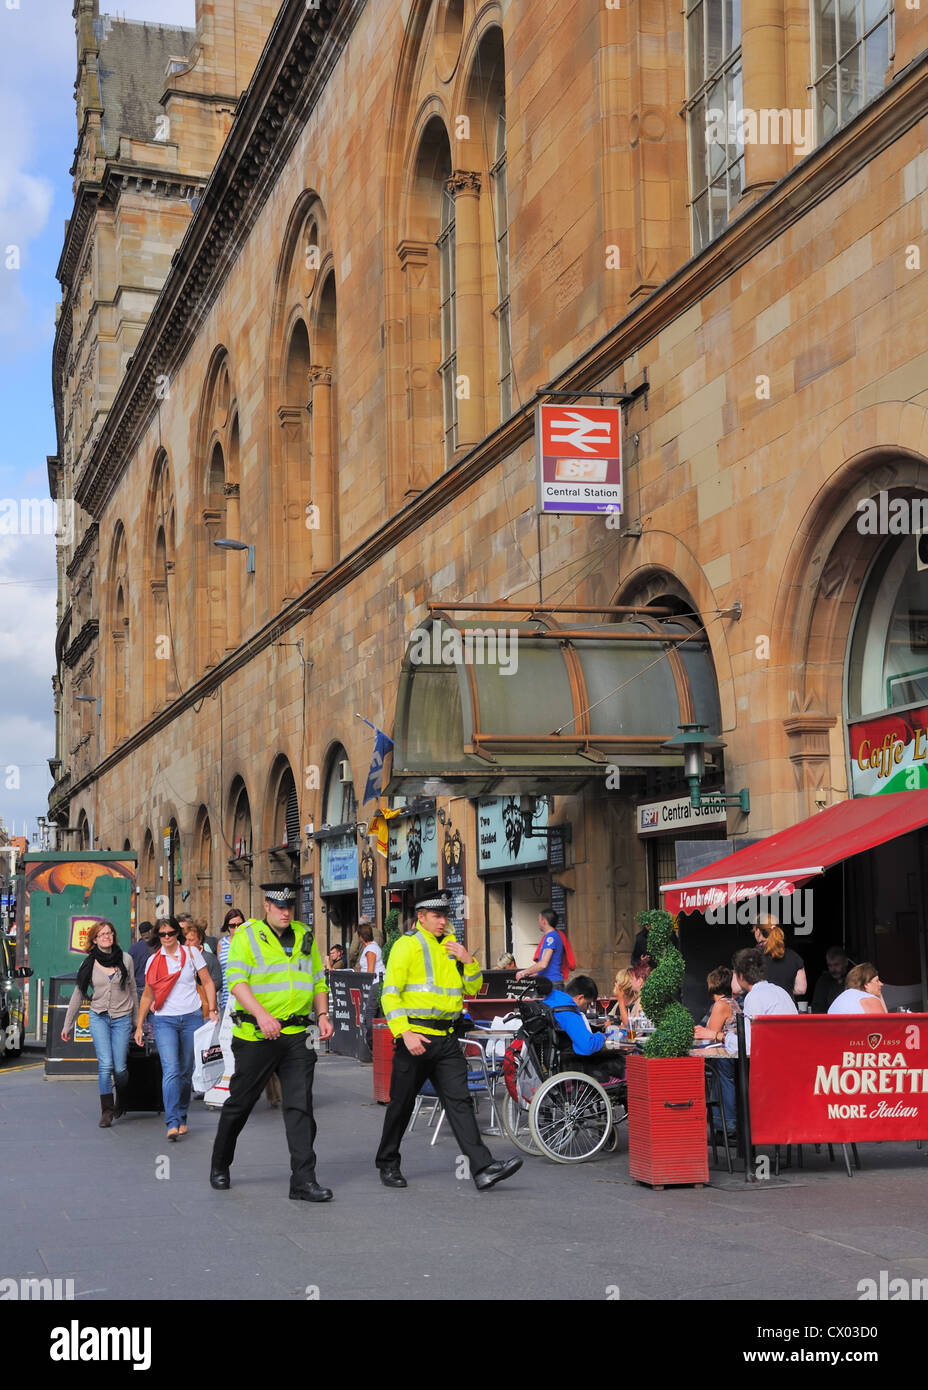 Police patrolling the city centre streets of Glasgow - Stock Image